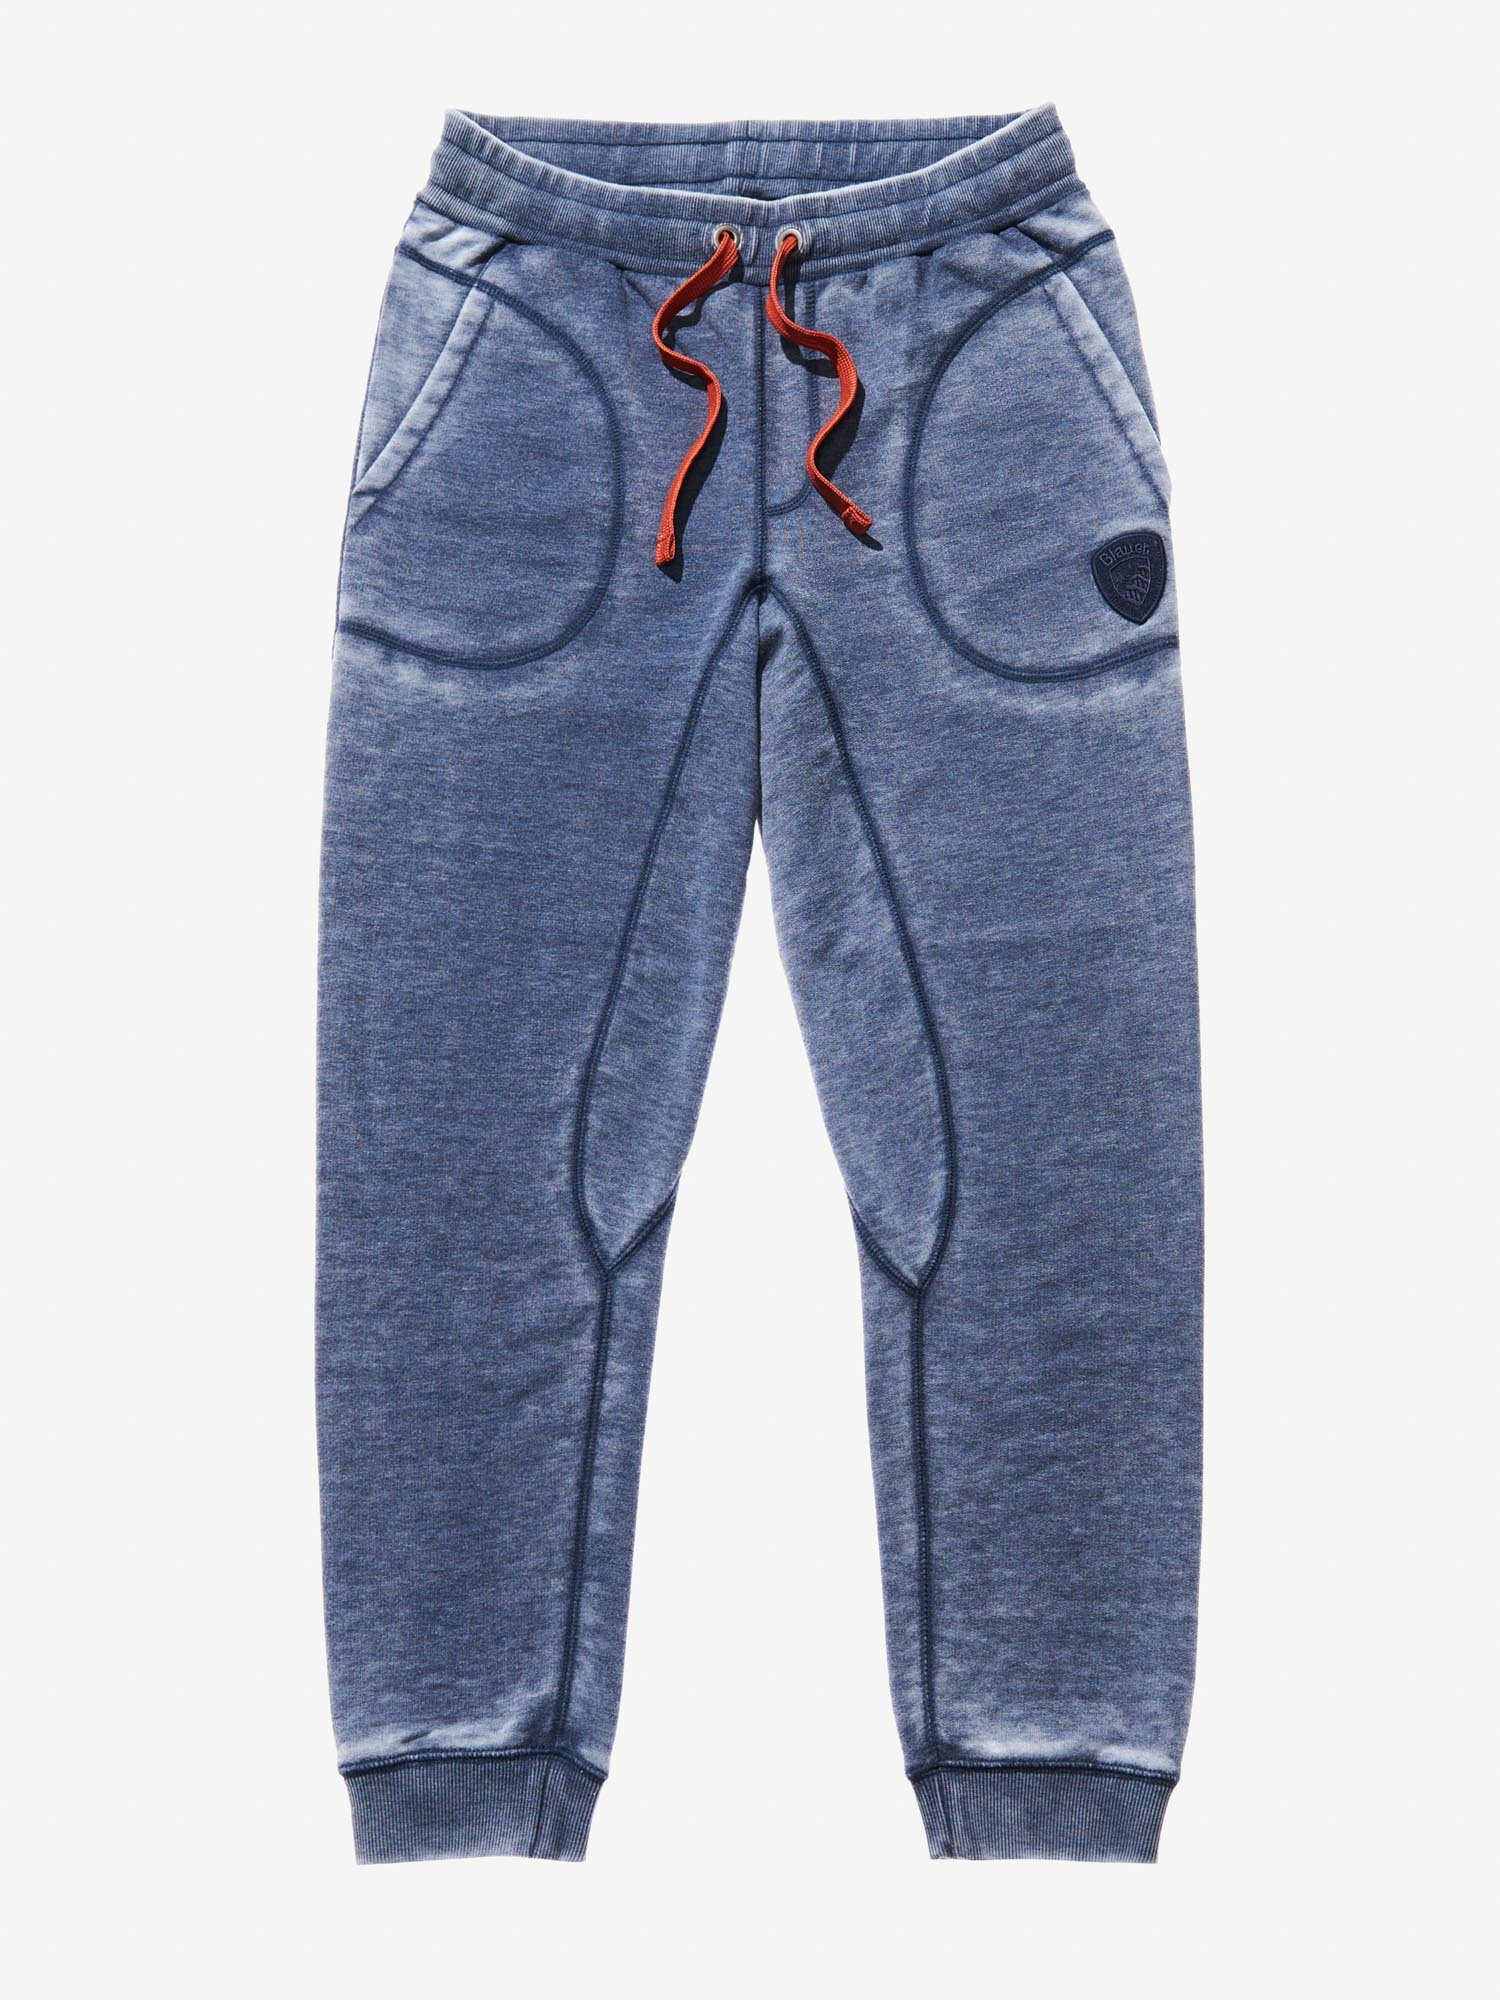 SWEATSHIRT-HOSE BURNOUT - Blauer